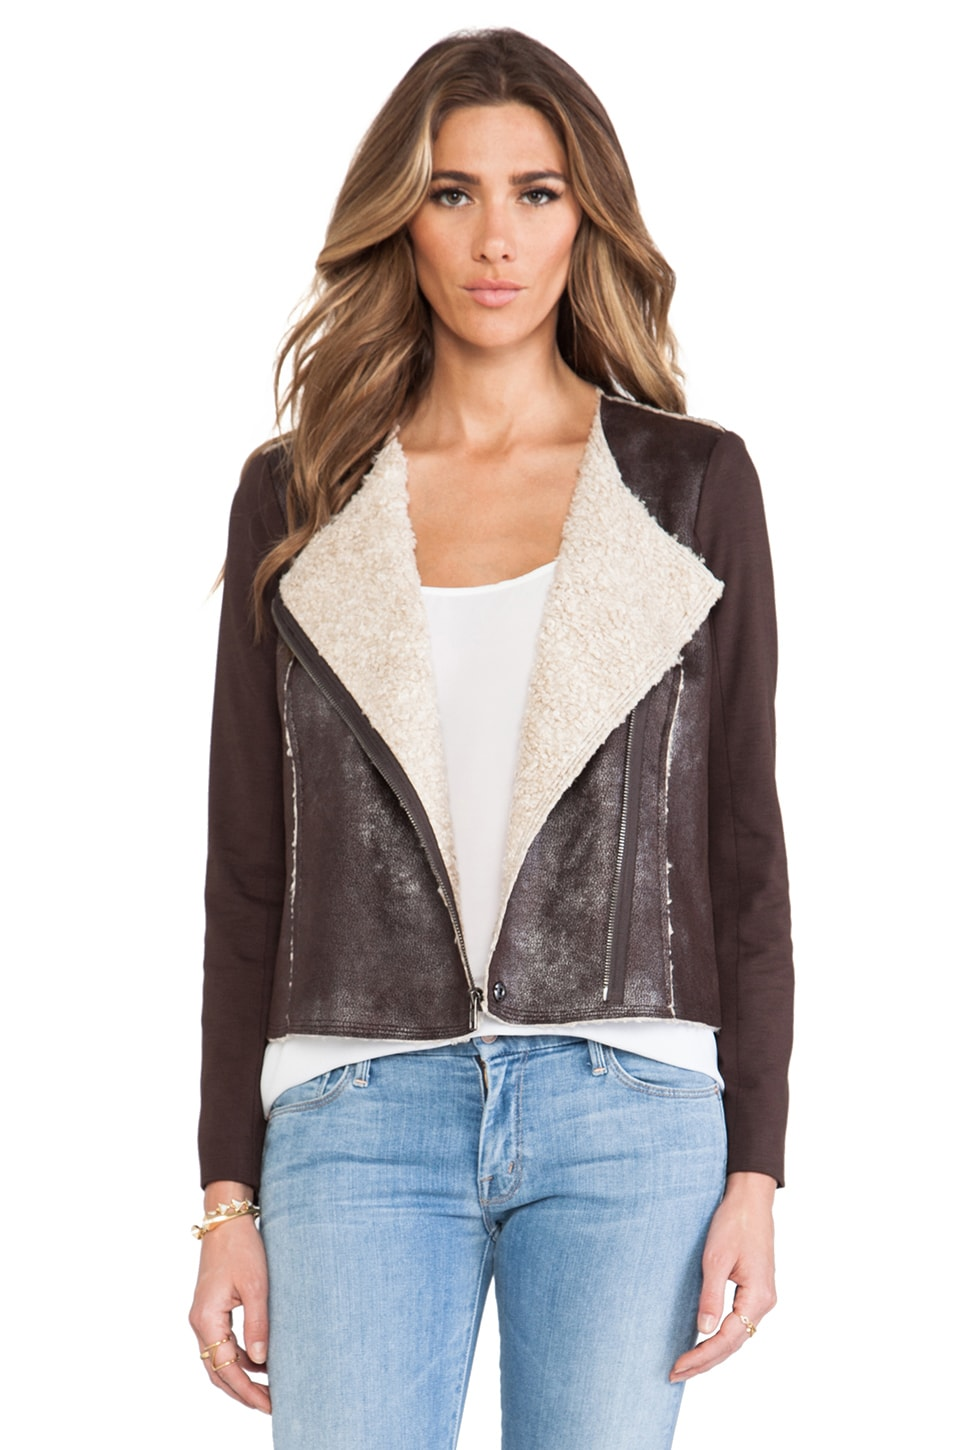 Ella Moss Riley Jacket with Faux Shearling in Sequola